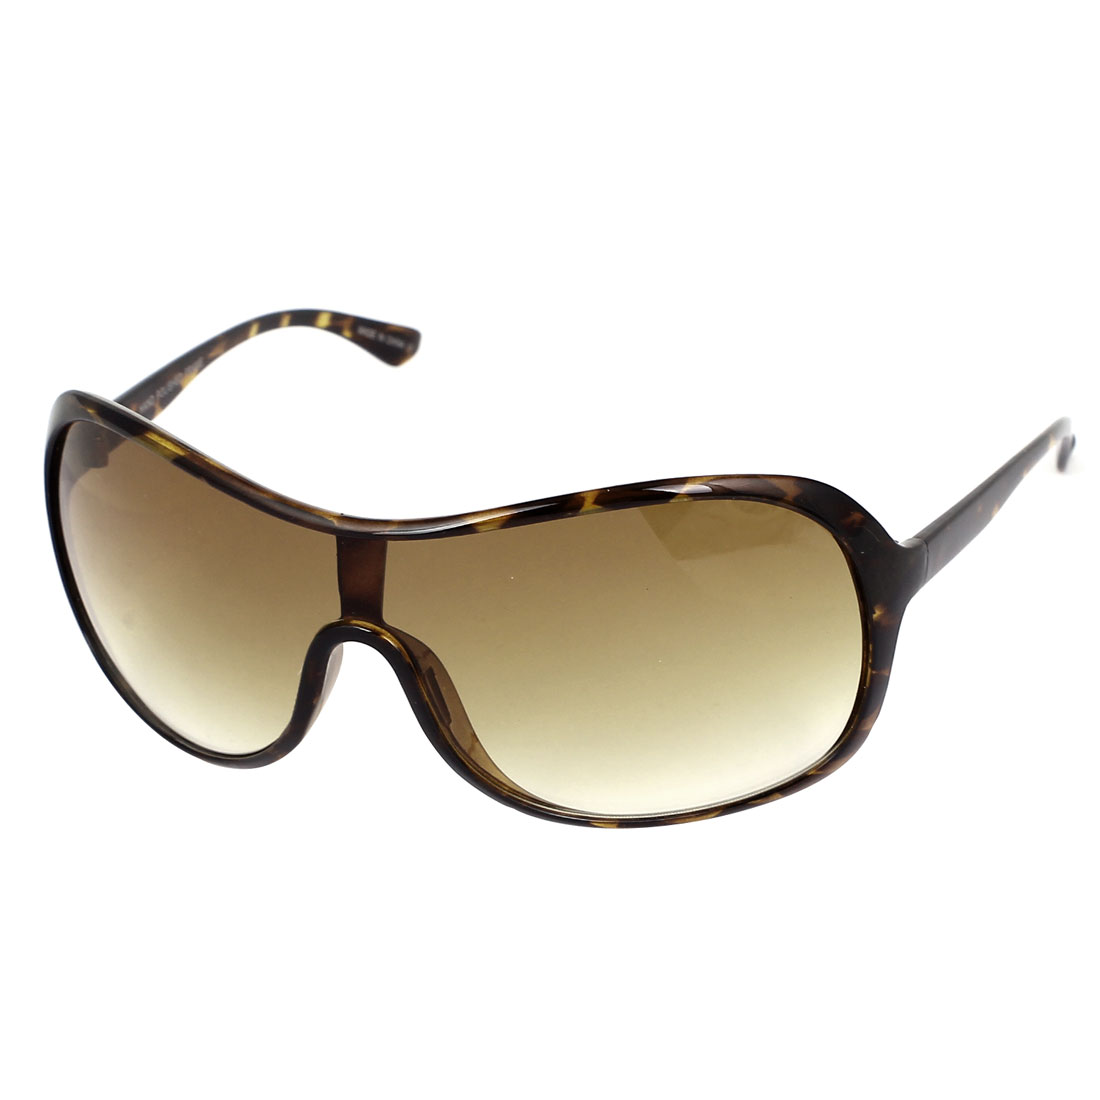 Women Plastic Leopard Pattern Full Frame Single Bridge Uni Lens Sunglasses Brown